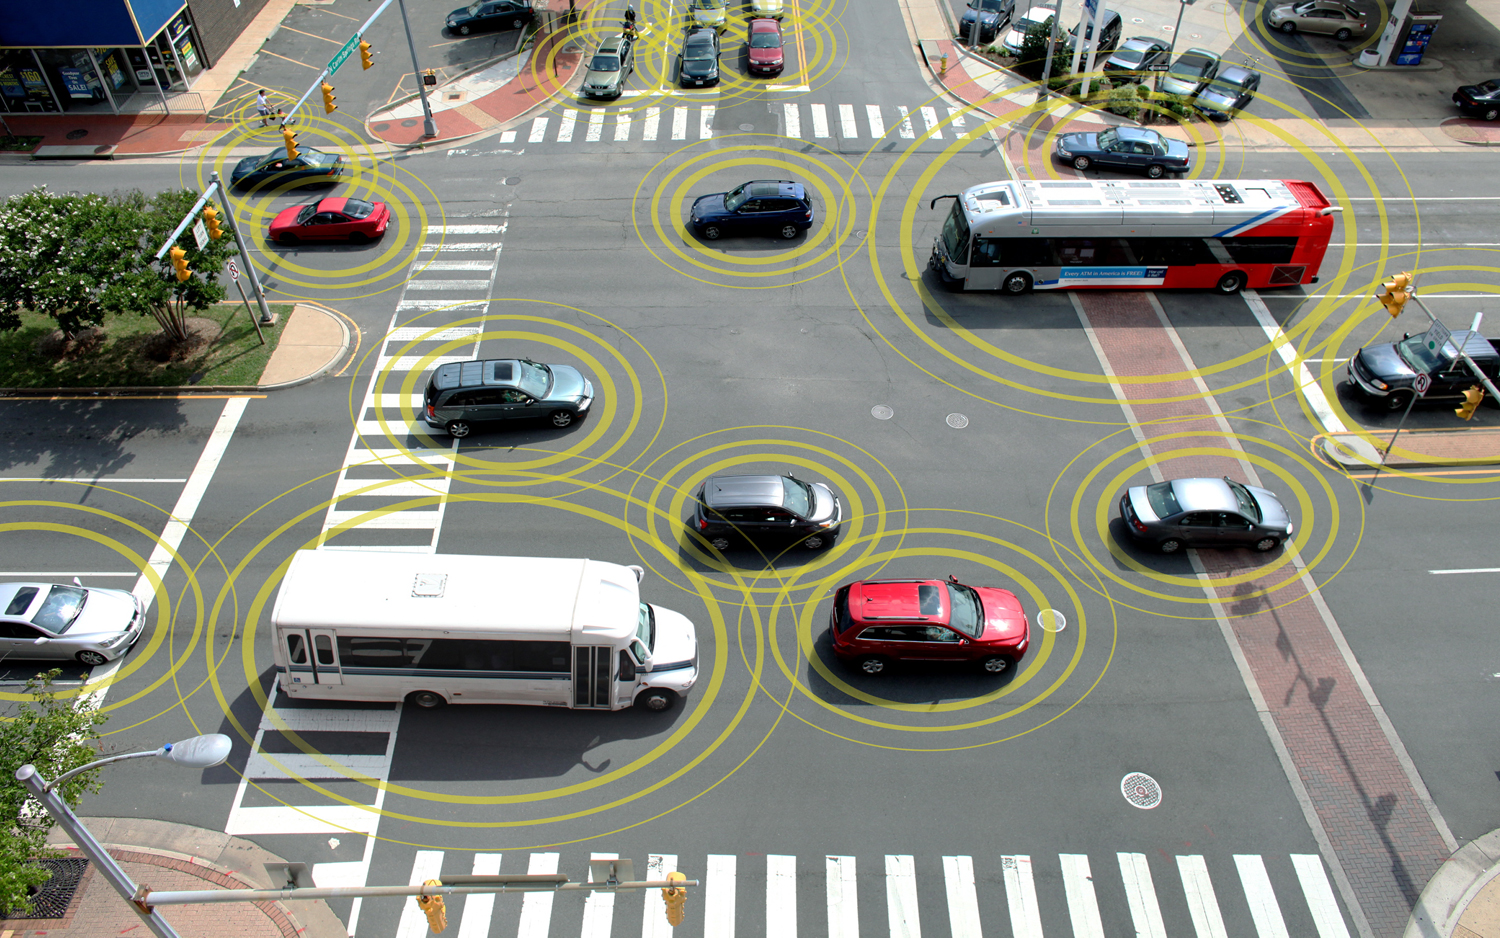 NHTSA Announces Plans to Submit V2V Communications Proposal